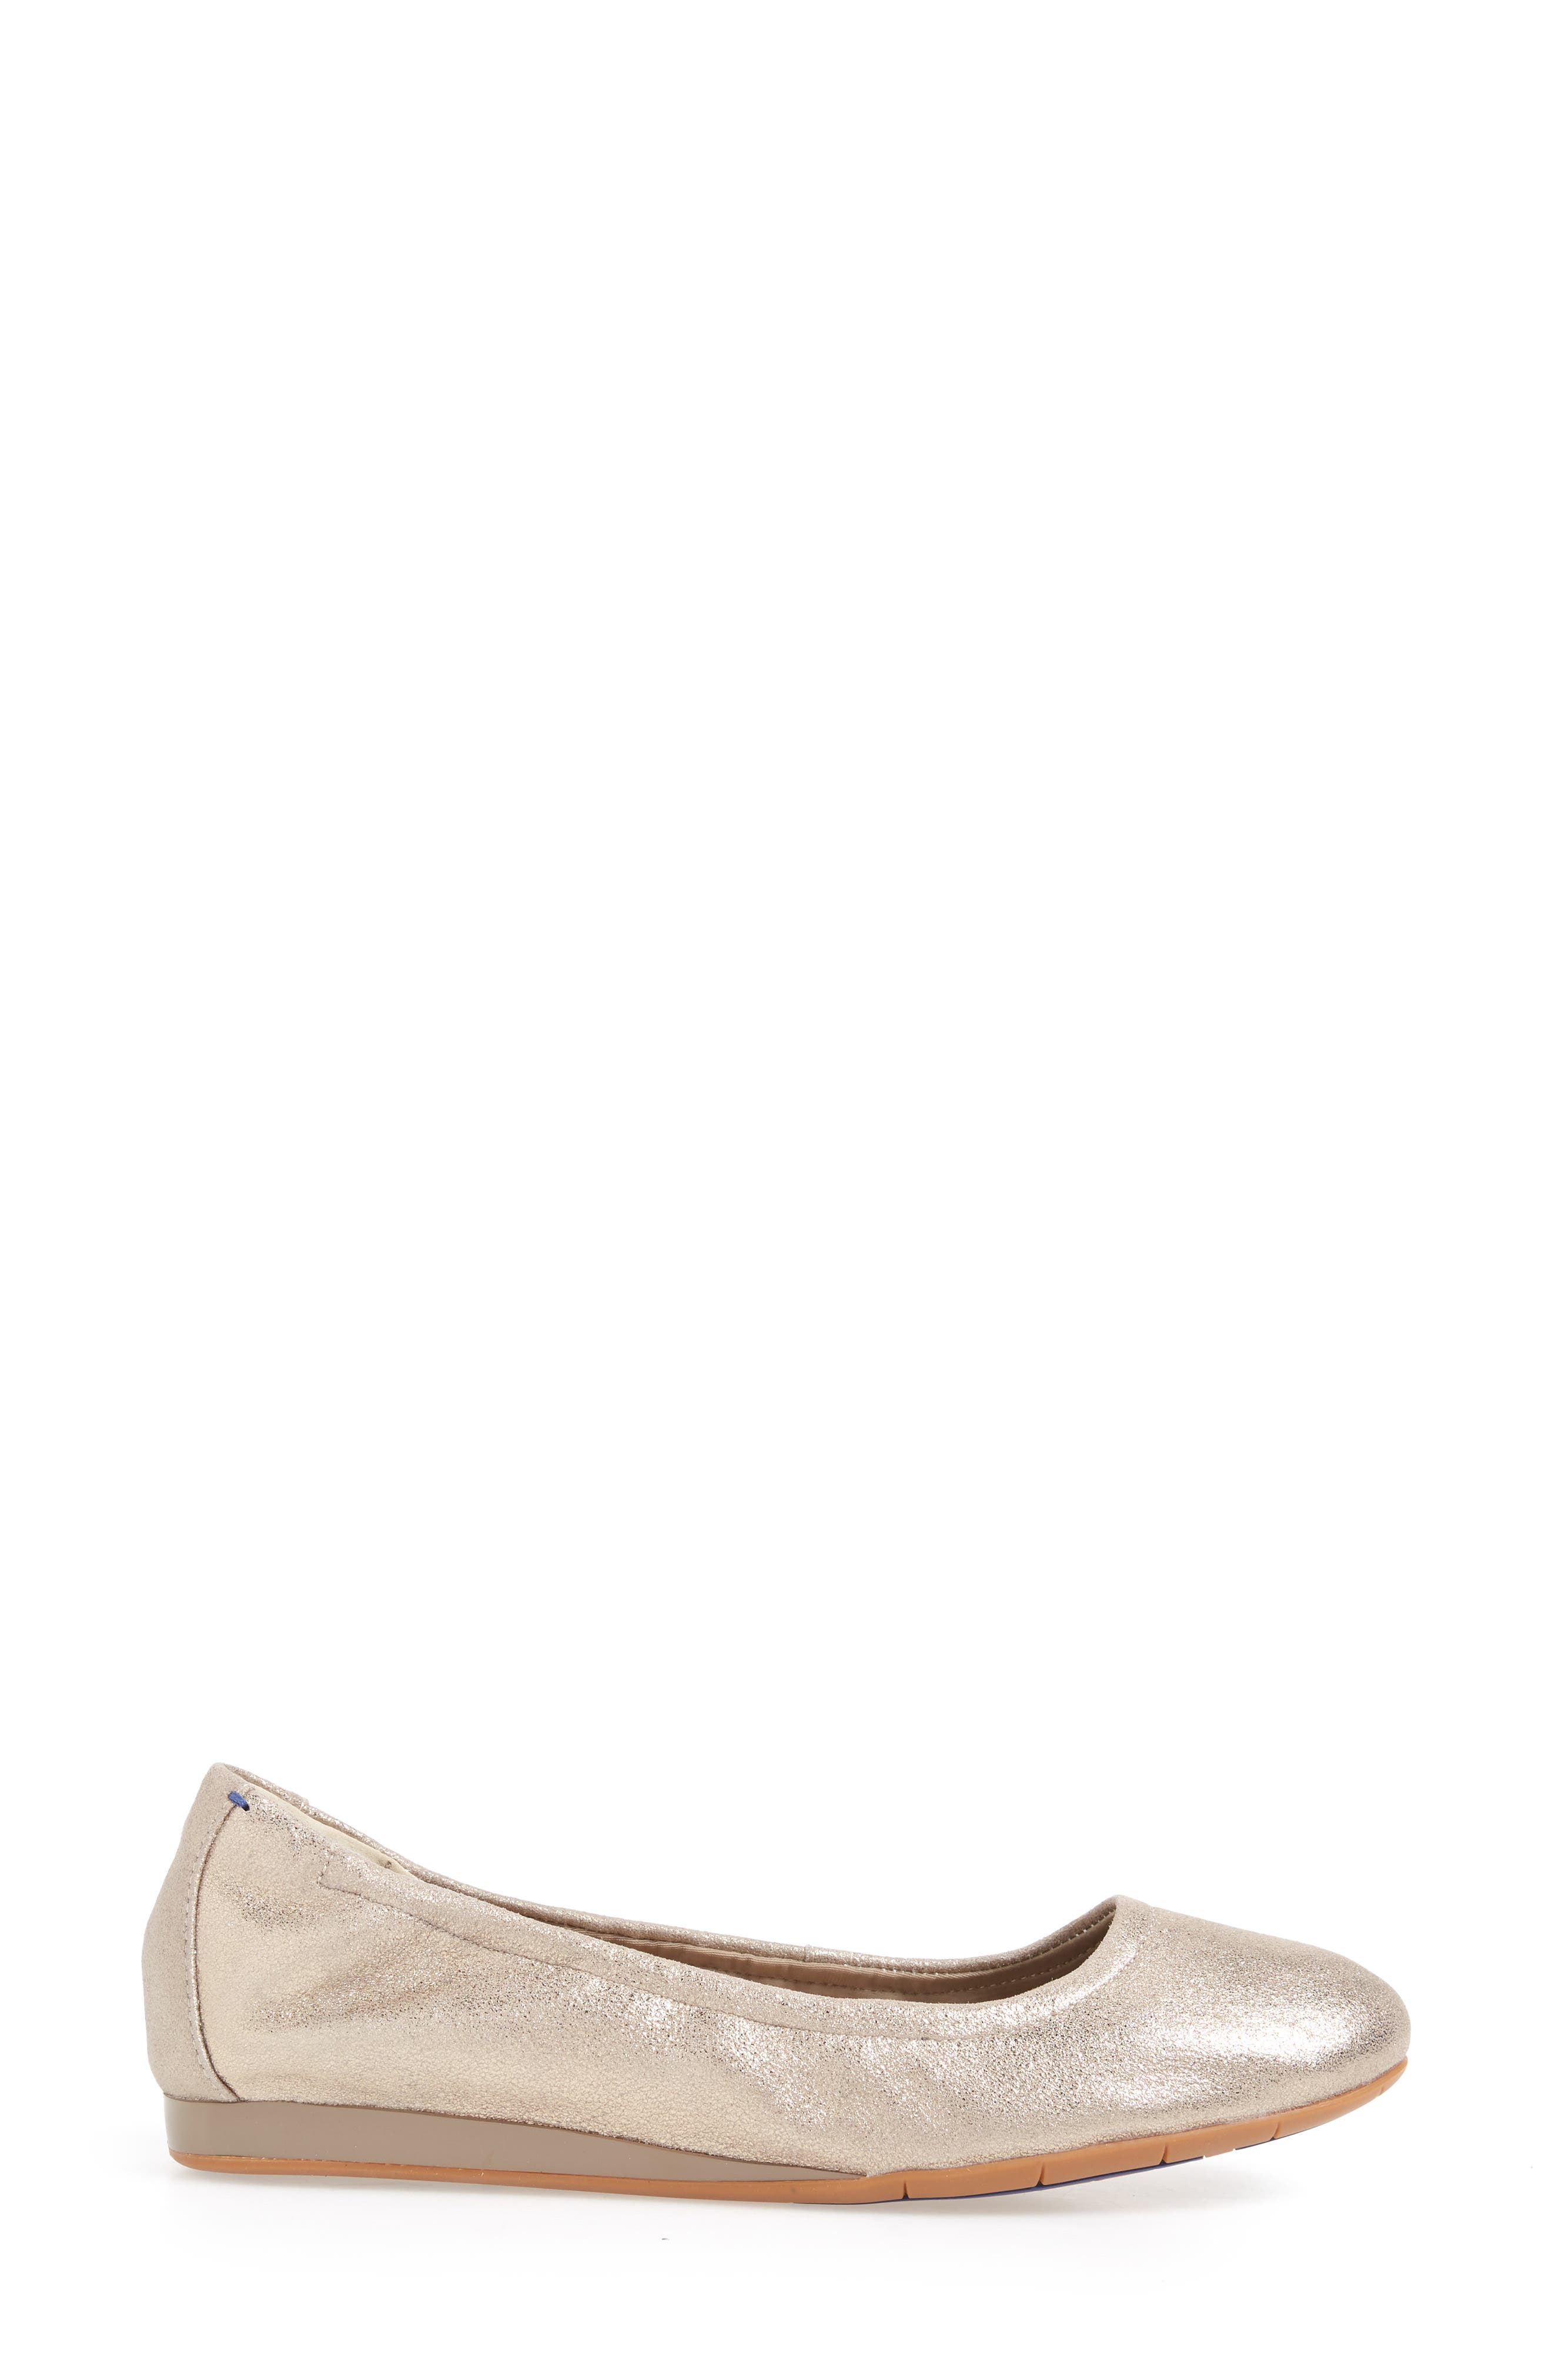 Helena Flat,                             Alternate thumbnail 3, color,                             TAUPE NUBUCK LEATHER